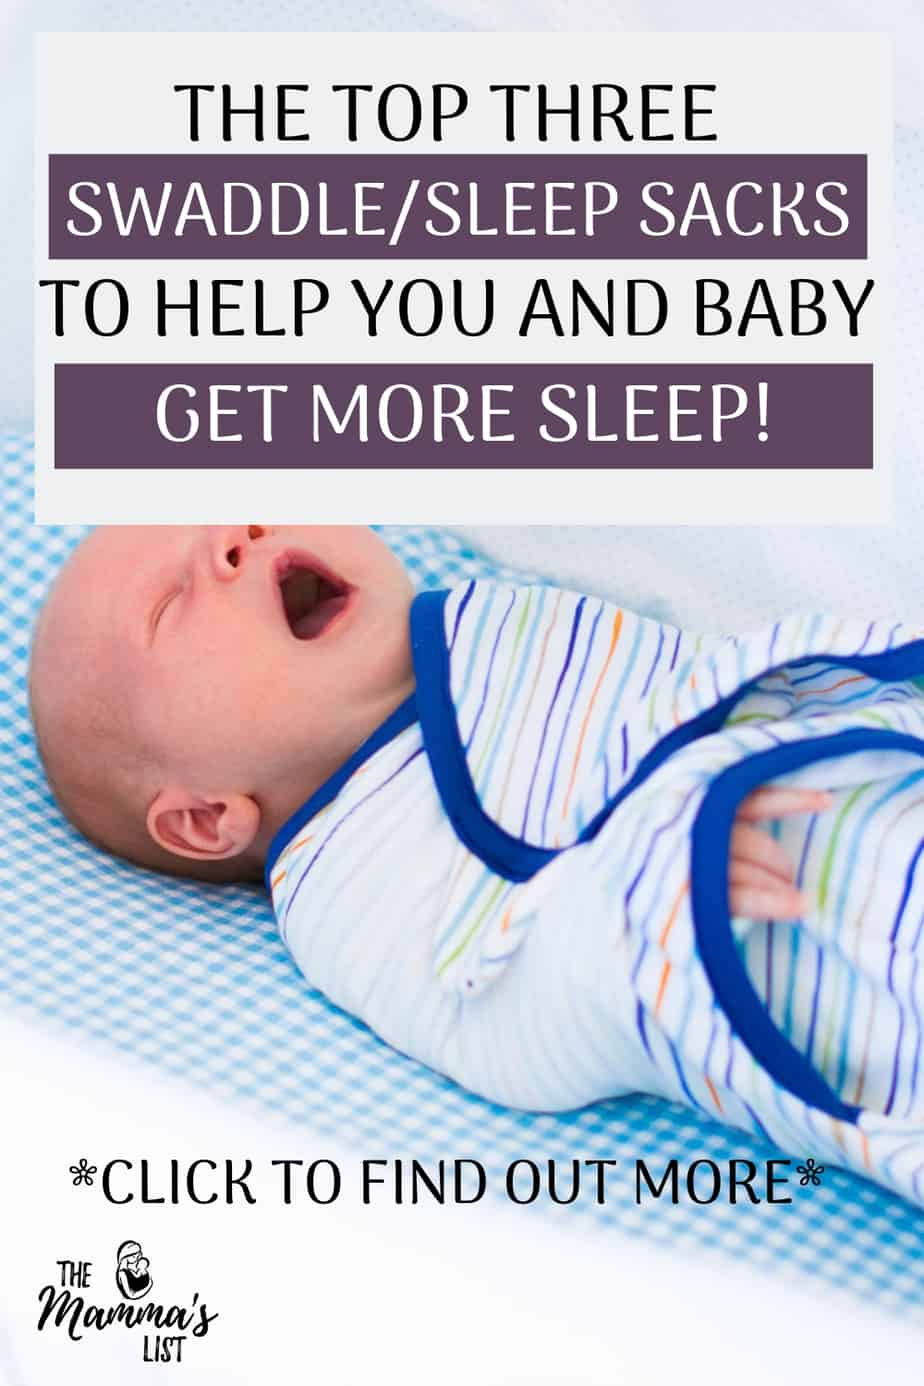 Have you not figured out the baby swaddle game yet? Are you struggling to find a swaddle or sleep sack you feel good about or one that actually works? Here are three awesome swaddle and sleepsack options to help both you and your baby get more sleep.